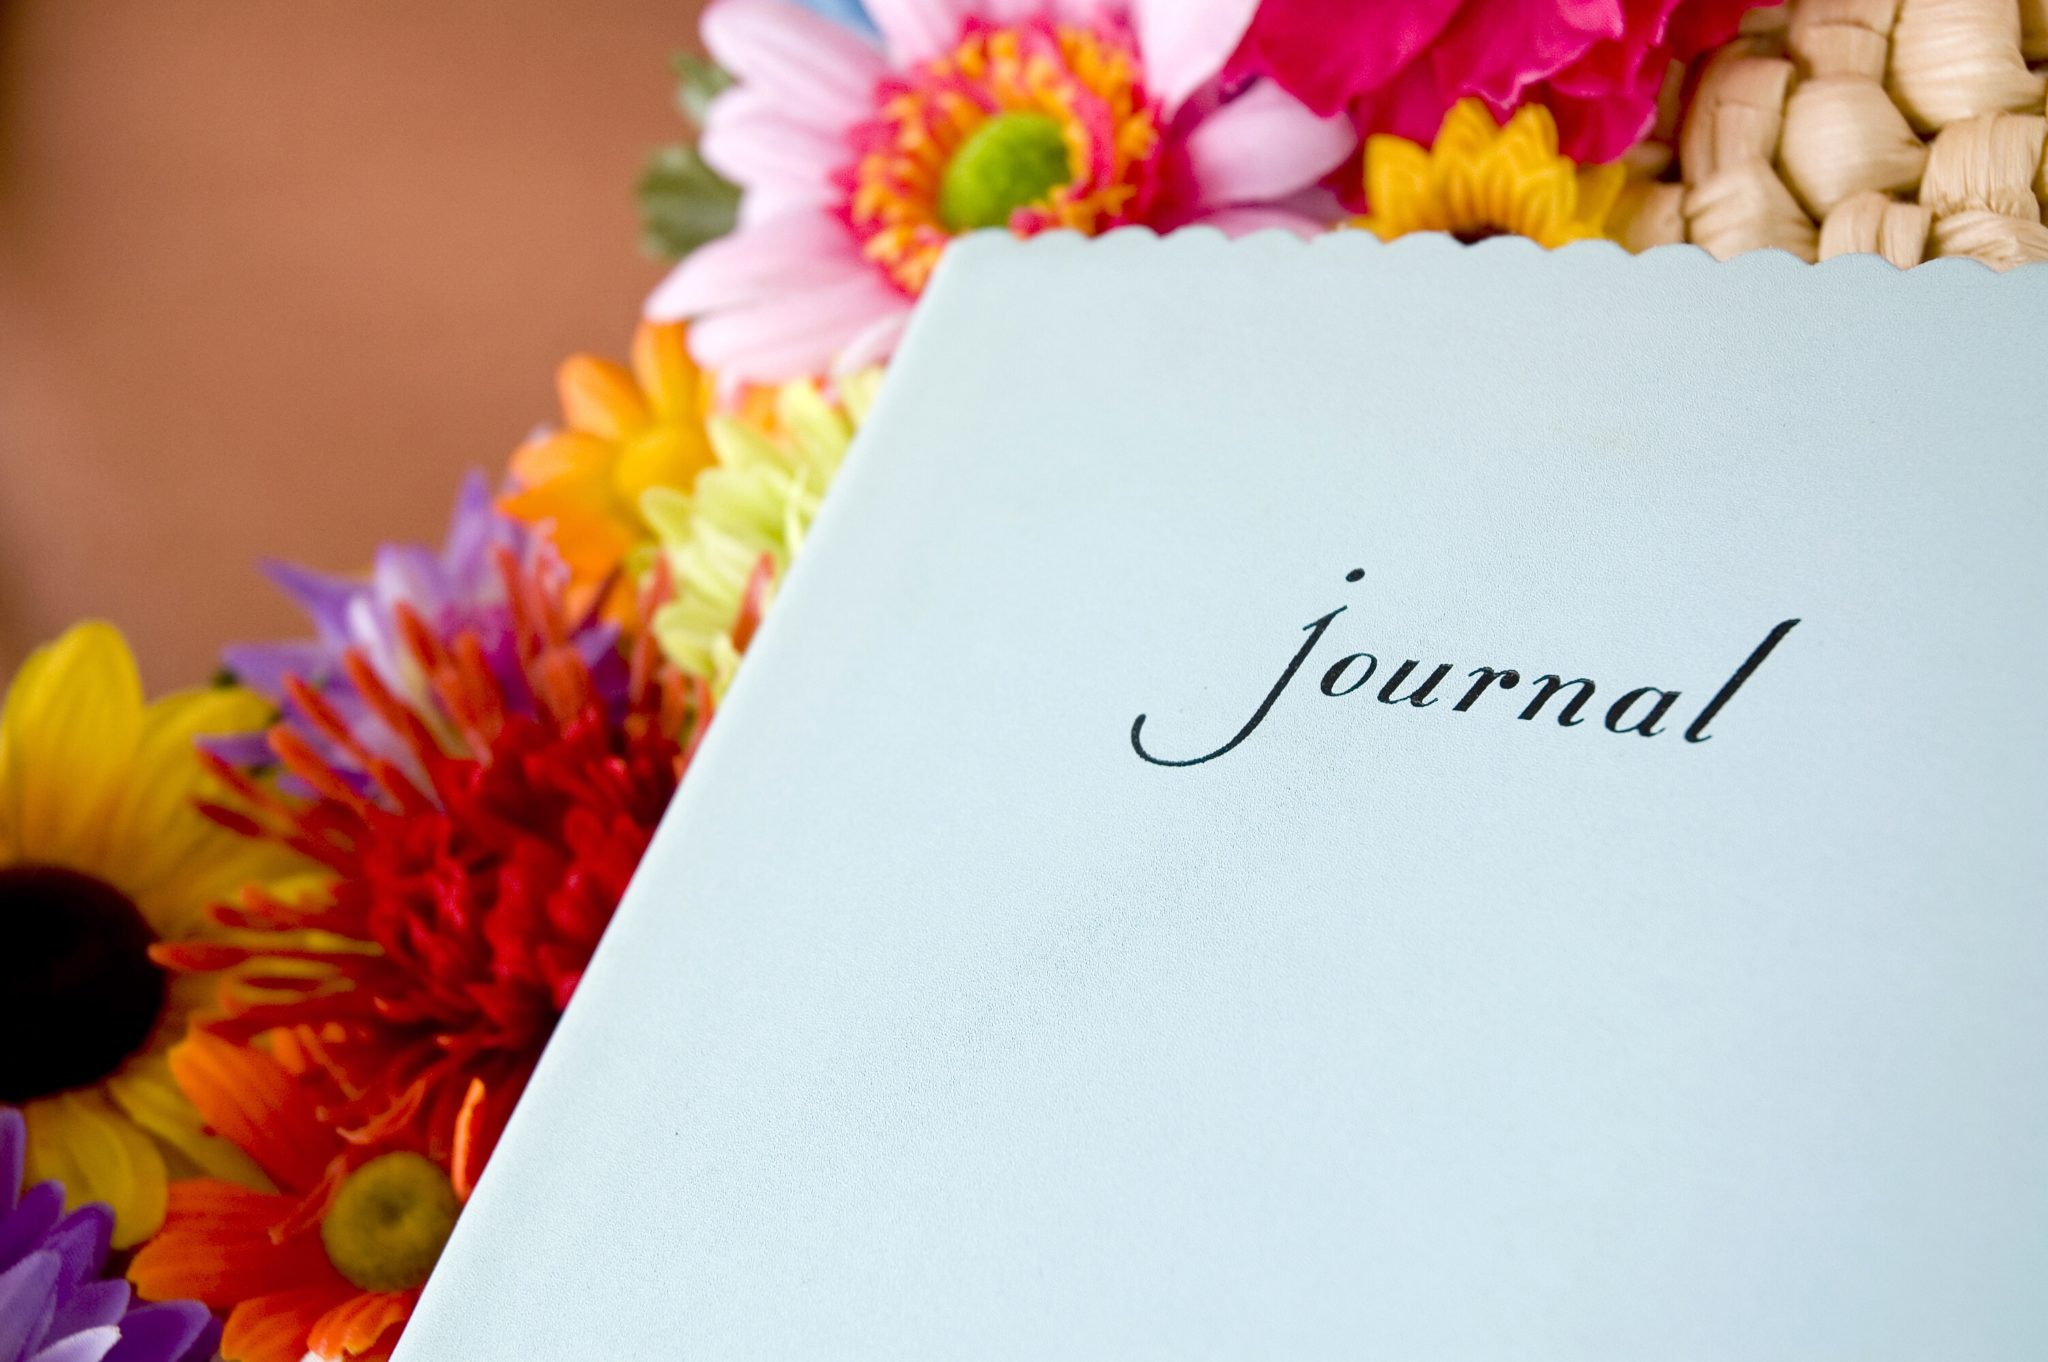 Journal with flowers.